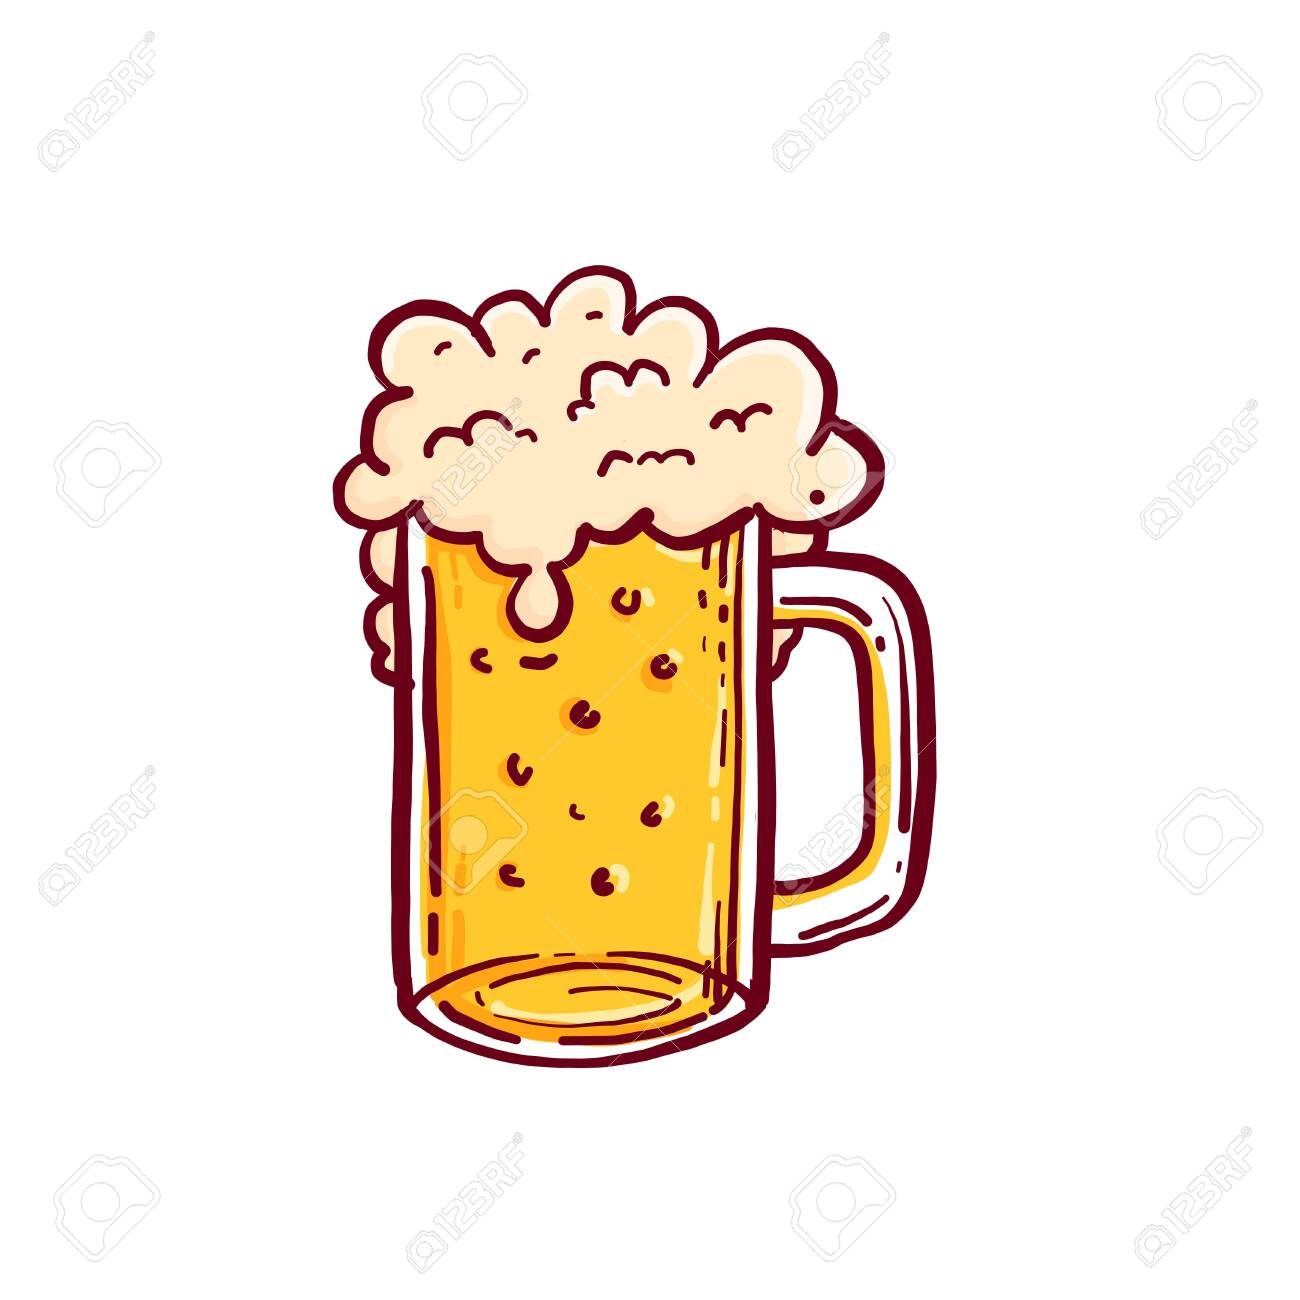 Octoberfest Beer Mug Doodle Vector Illustration Royalty Free Cliparts Vectors And Stock Illustration Image 130727087